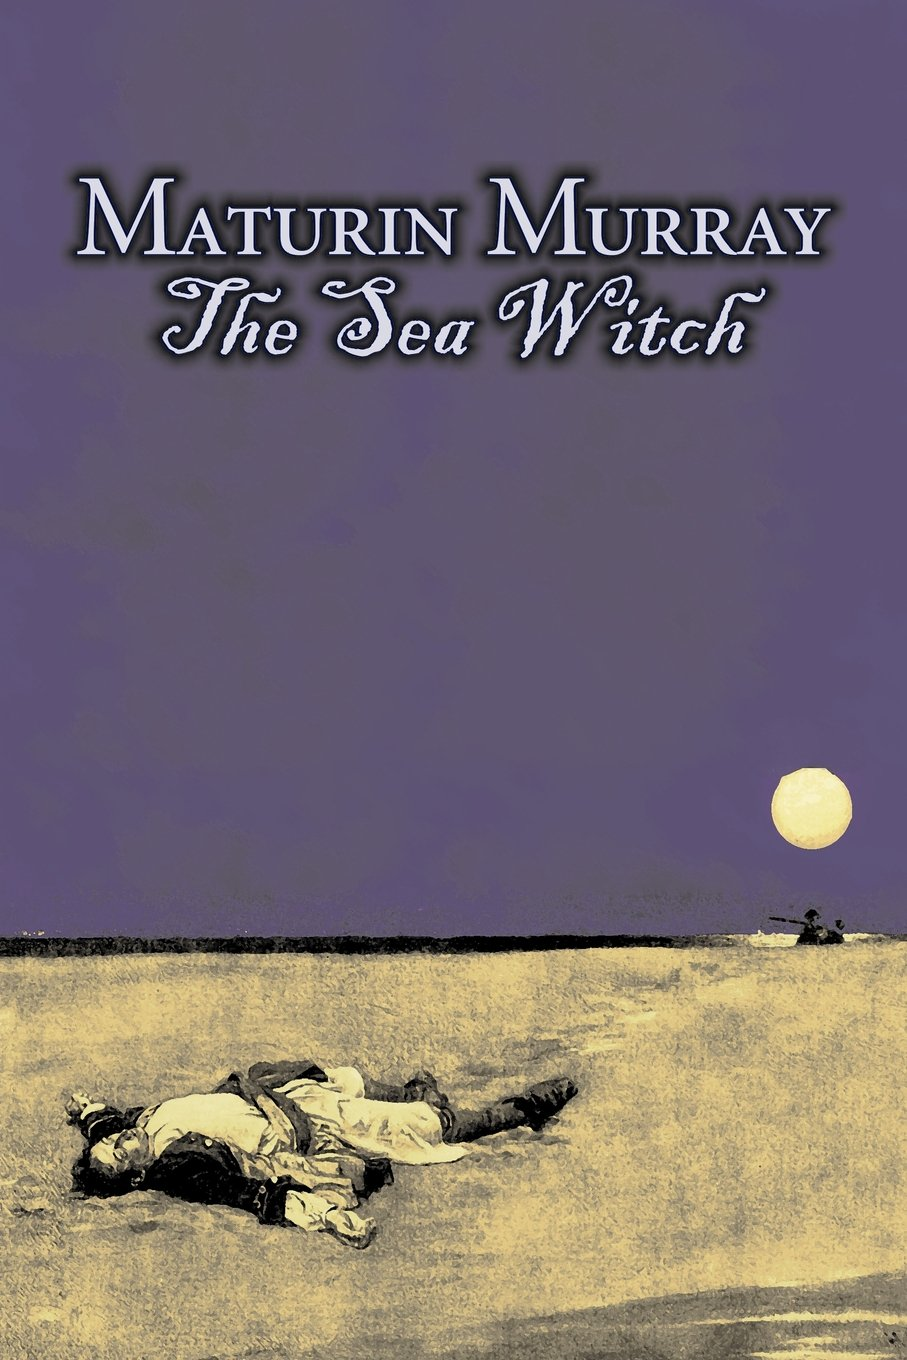 Download The Sea Witch by Maturin Murray, Fiction, Action & Adventure ebook